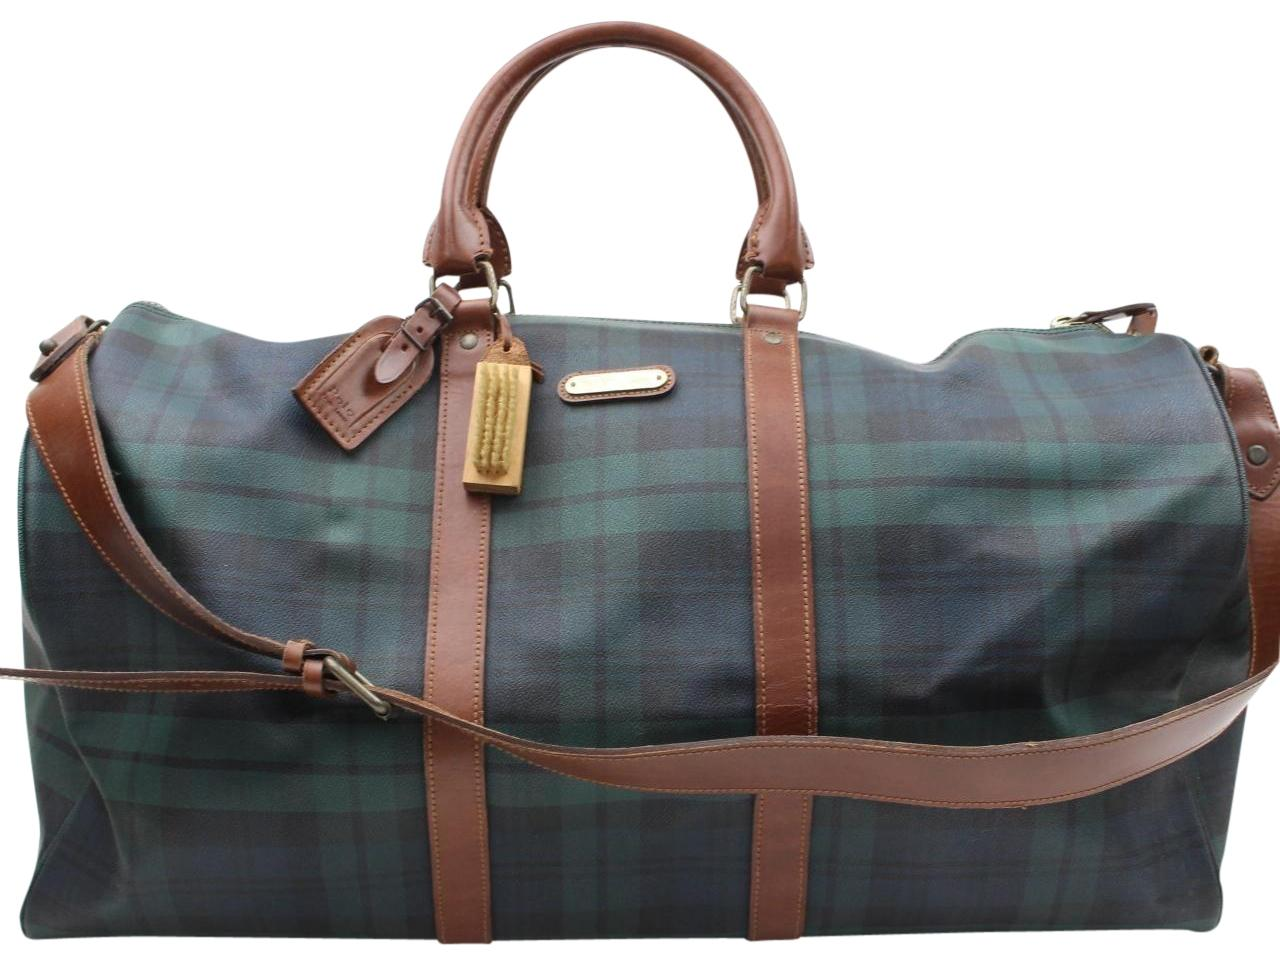 5cc071a24bbe ... get polo ralph lauren keepall bandouliere duffle boston green travel  bag cc55f 955f7 ...